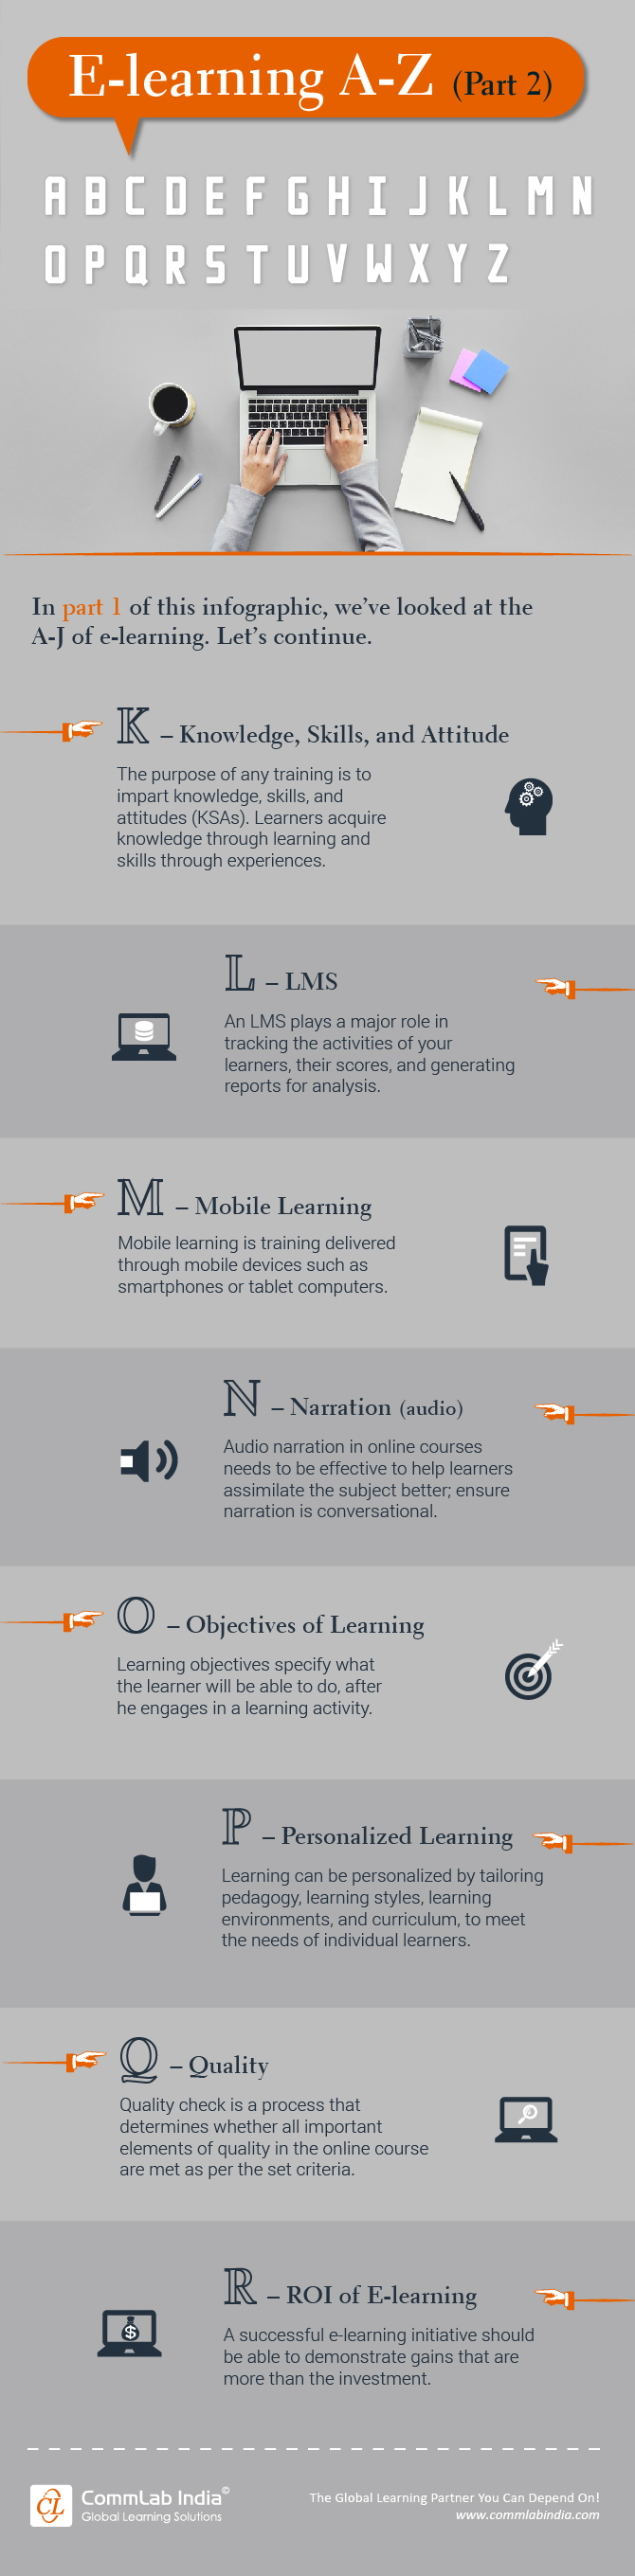 E-learning A-Z Terms: Part 2 [Infographic]